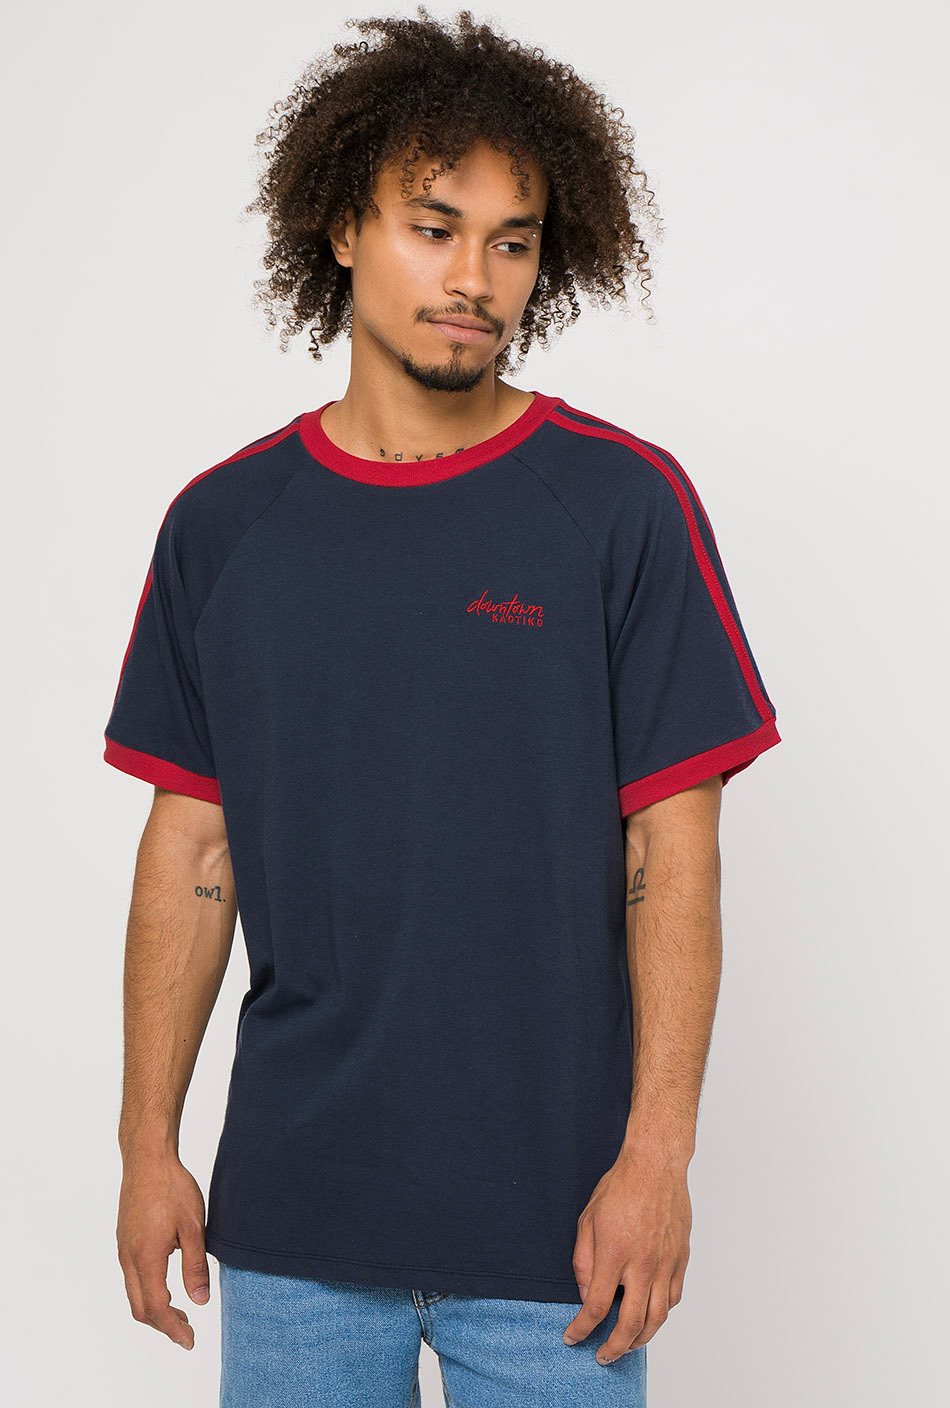 Hank navy t-shirt